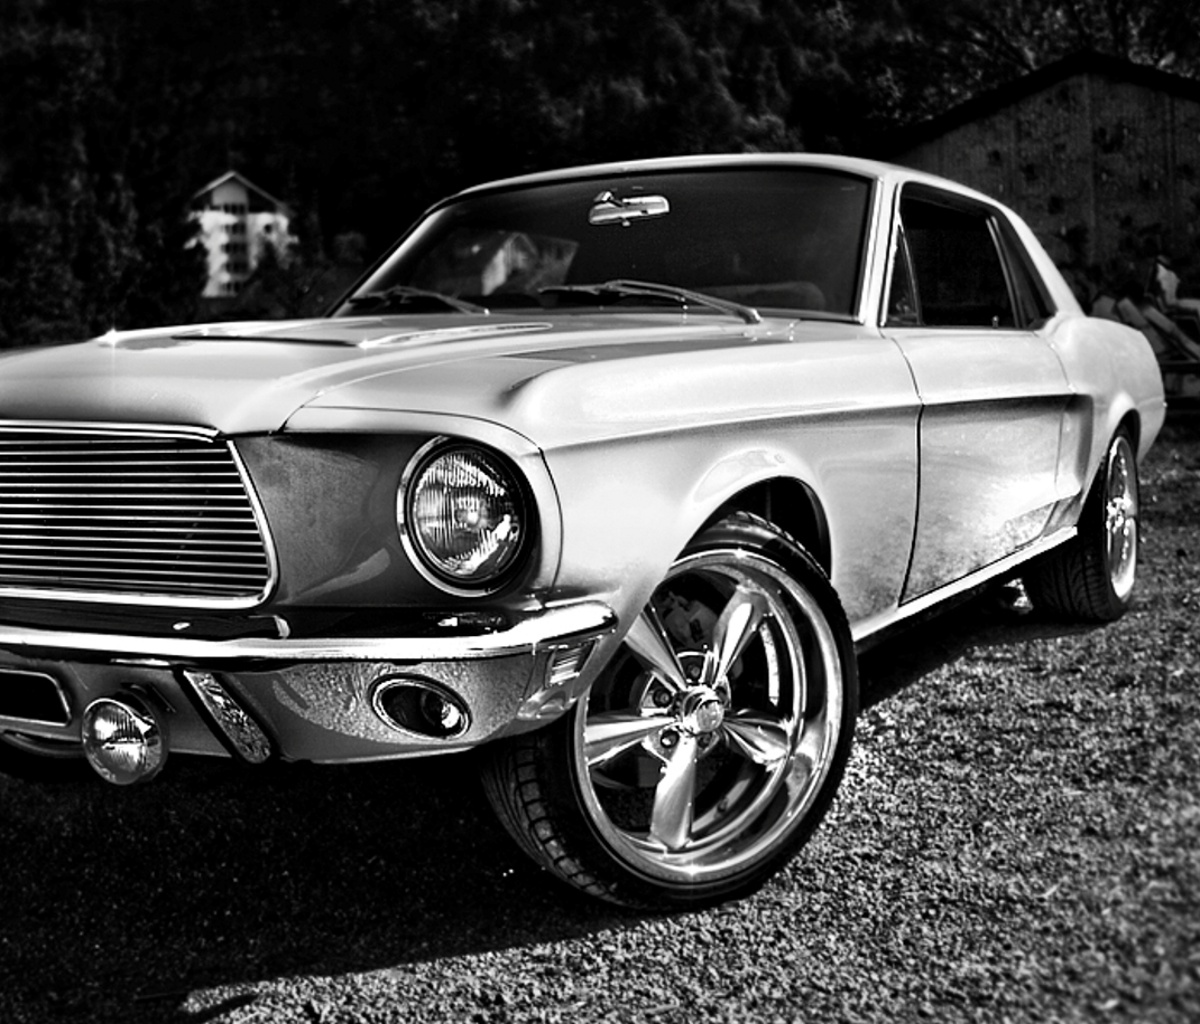 ford mustang 1200x1024 Screensaver wallpaper 1200x1024